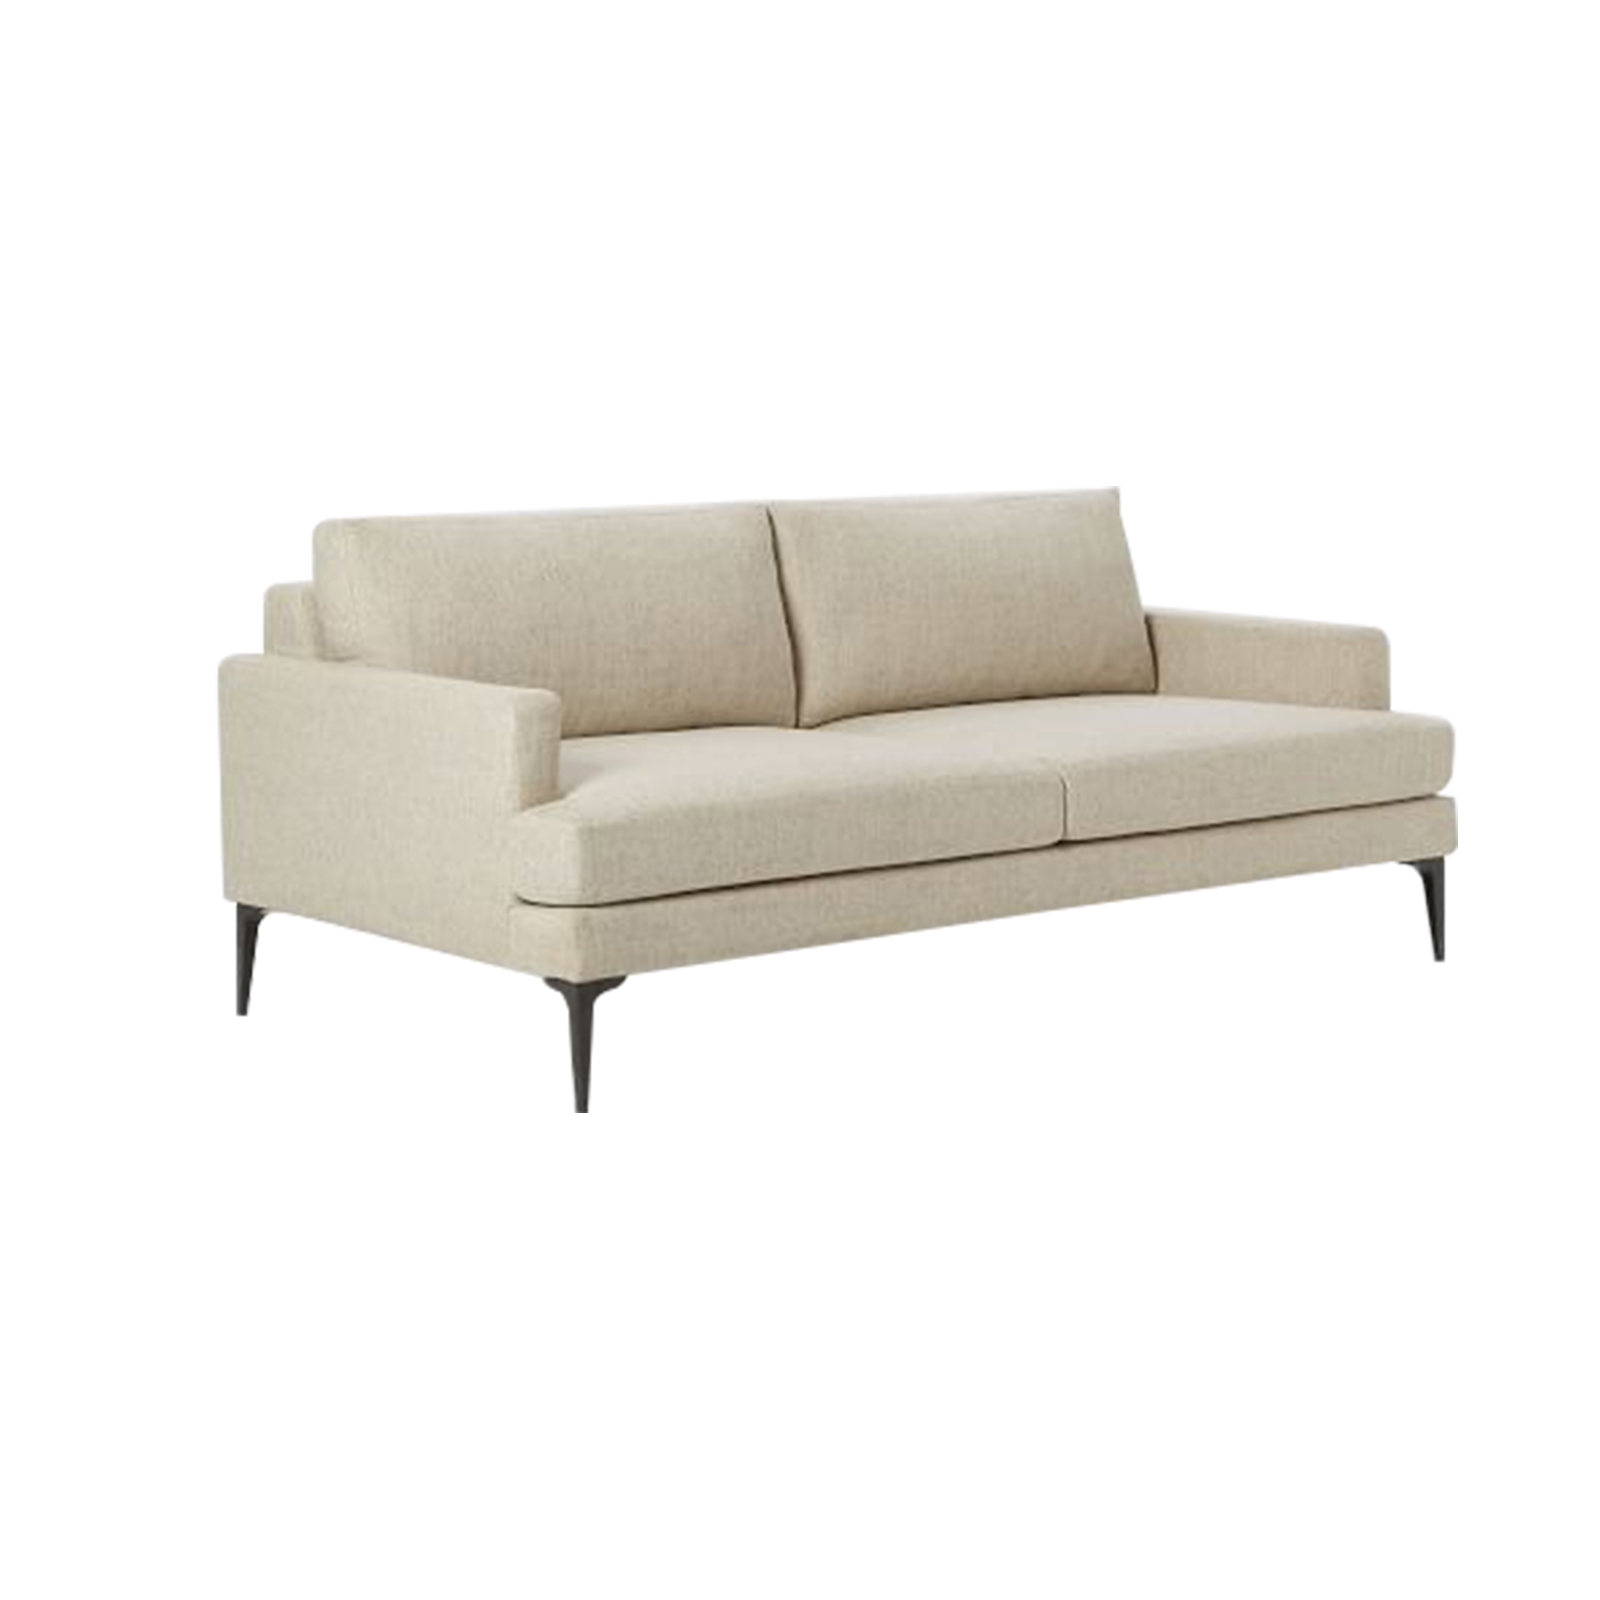 rental sofa macy s sleeper twin andes event trade show furniture formdecor